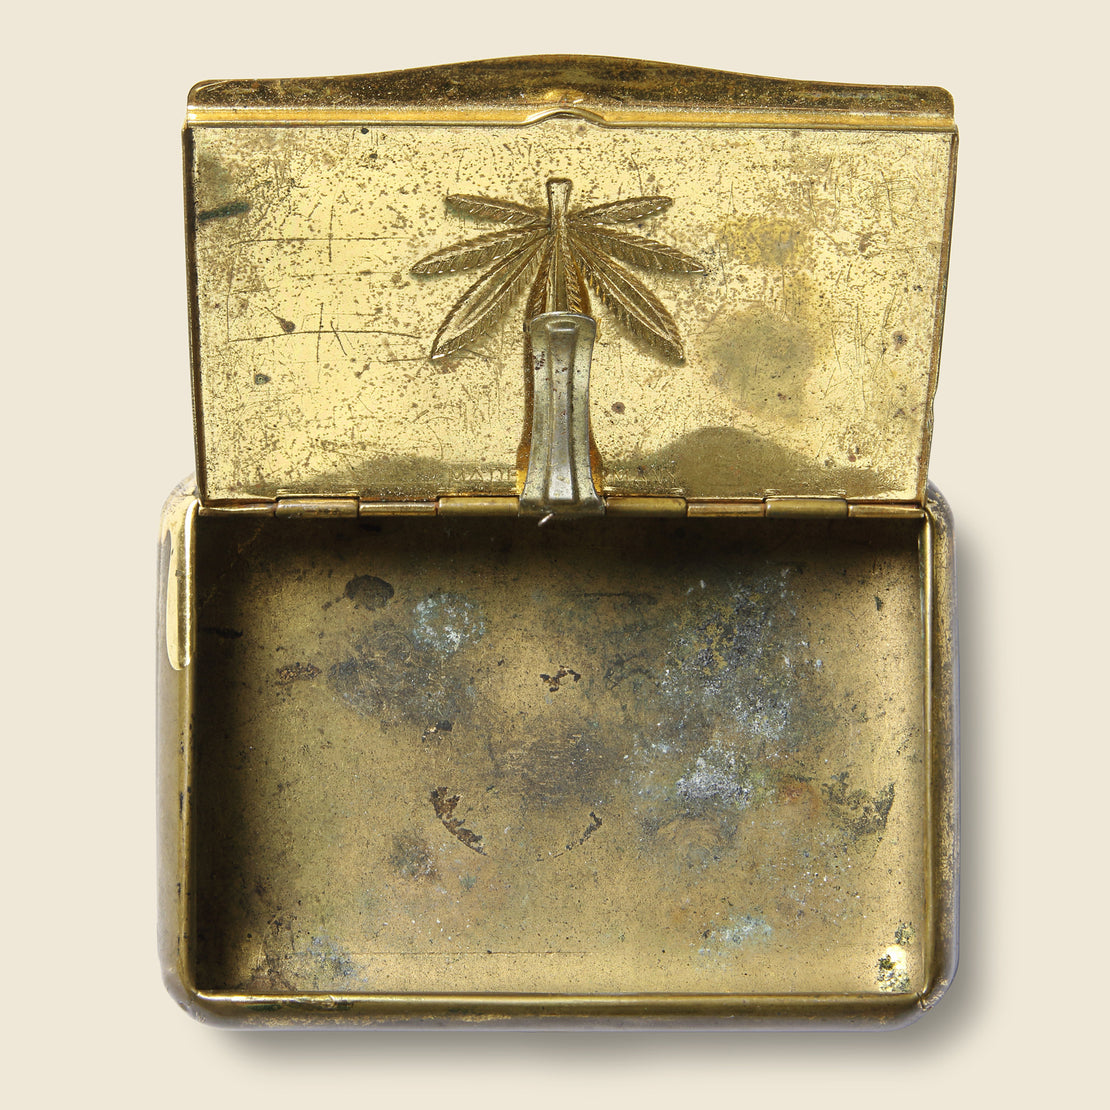 Brass Weed Box